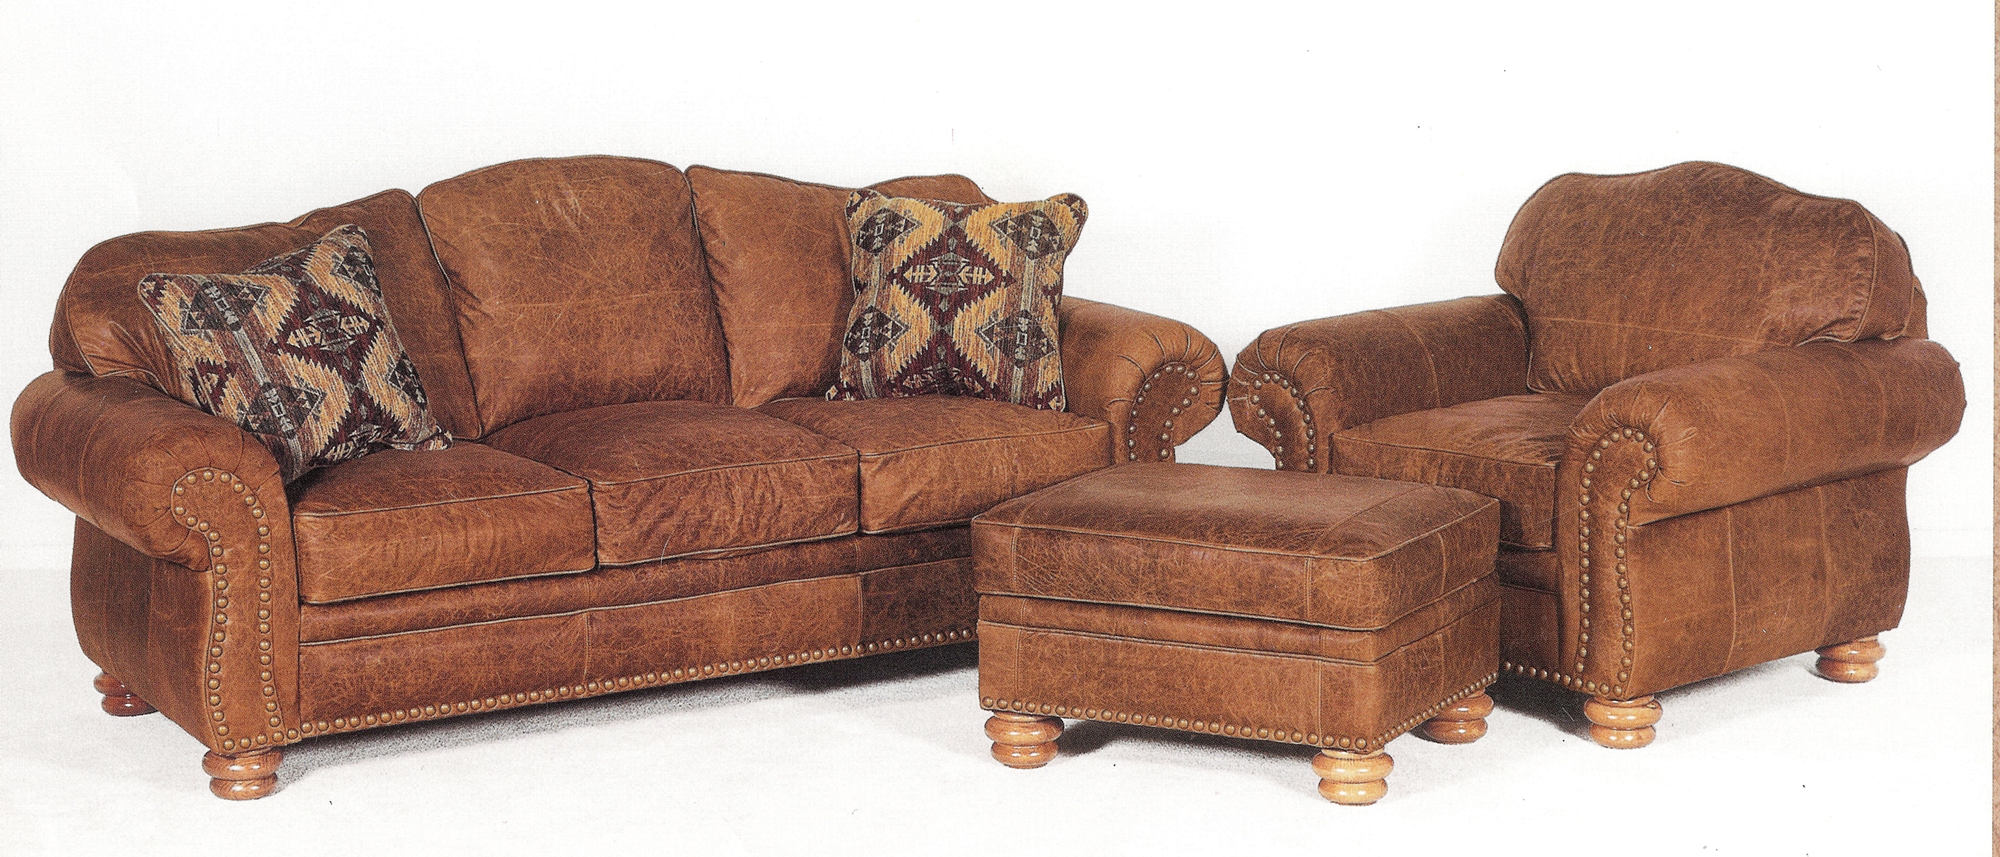 rustic leather sofa set lack table dimensions distressed chair and ottoman